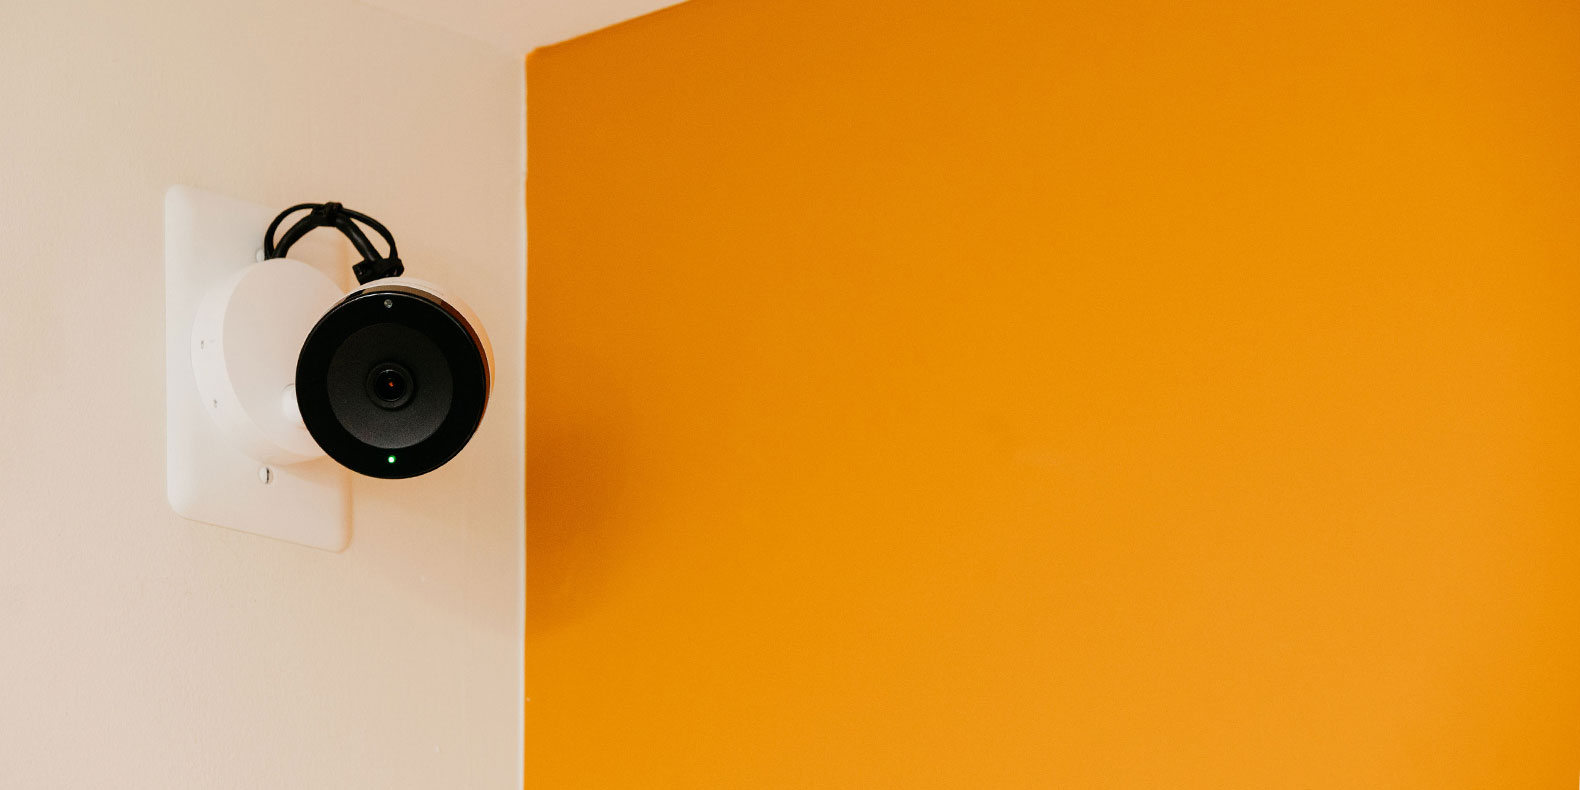 Everything You Need to Know About Cellular Security Cameras